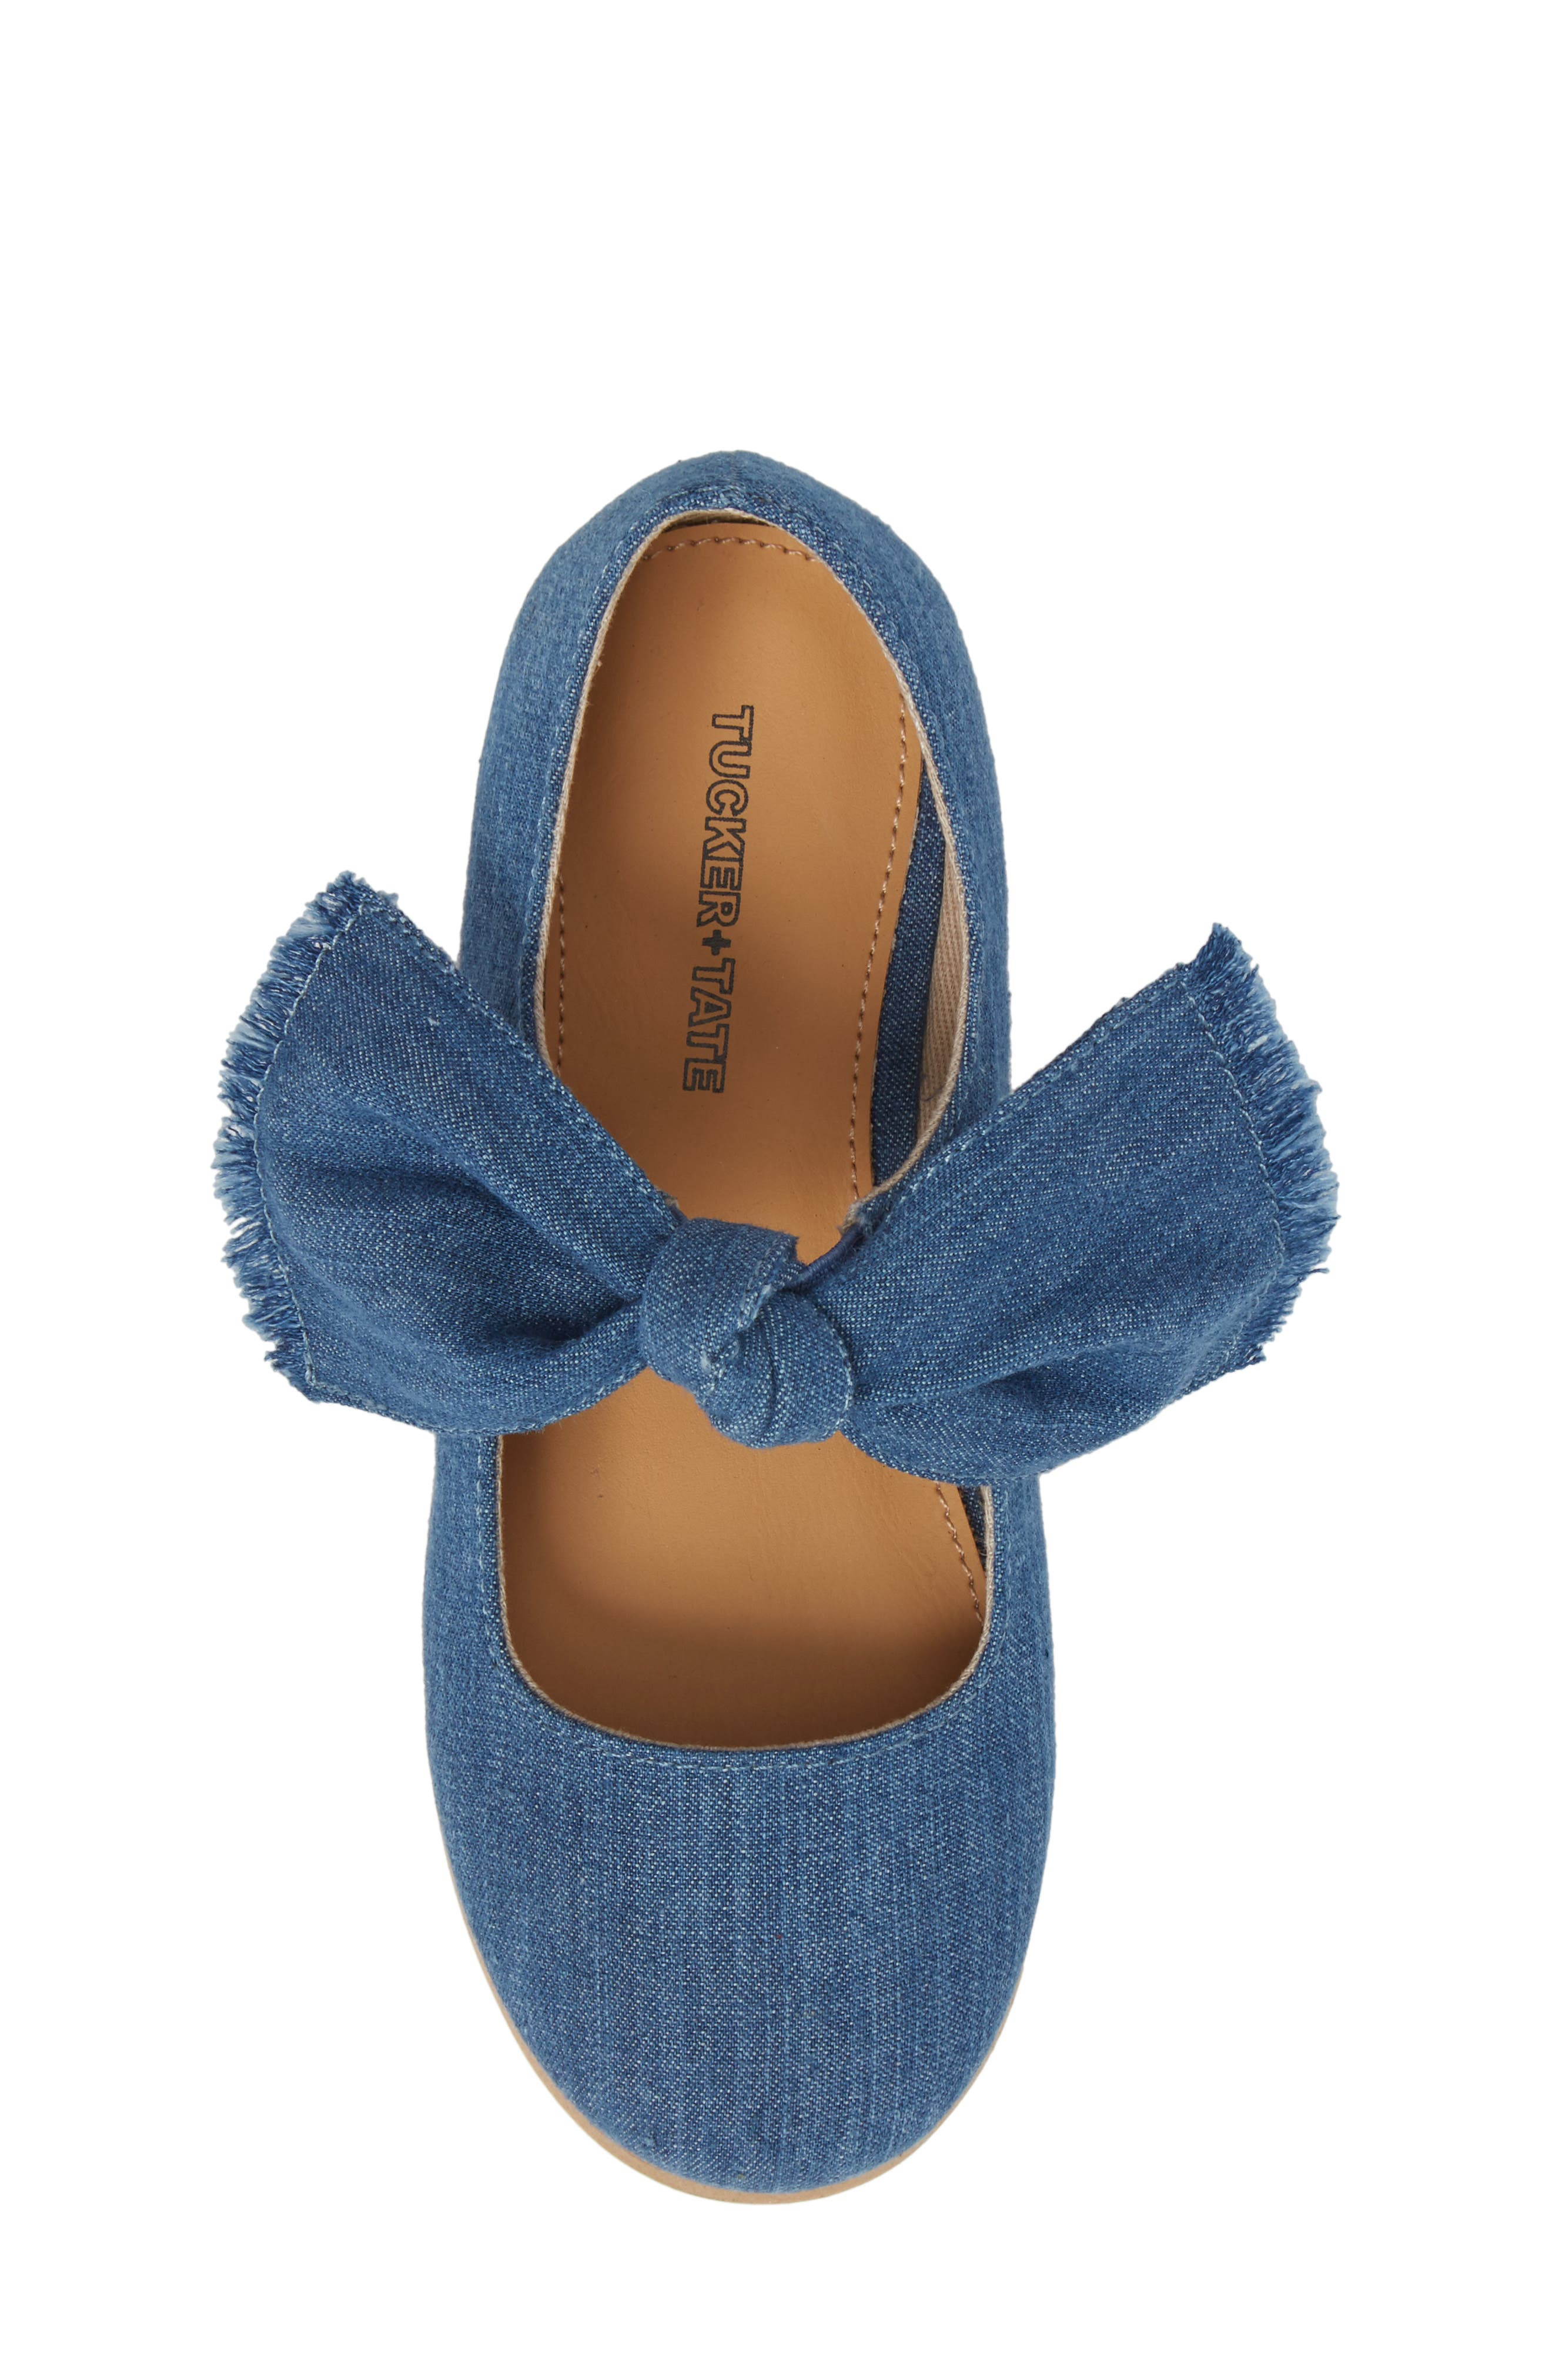 Helina Bow Mary Jane Flat,                             Alternate thumbnail 5, color,                             Chambray Fabric